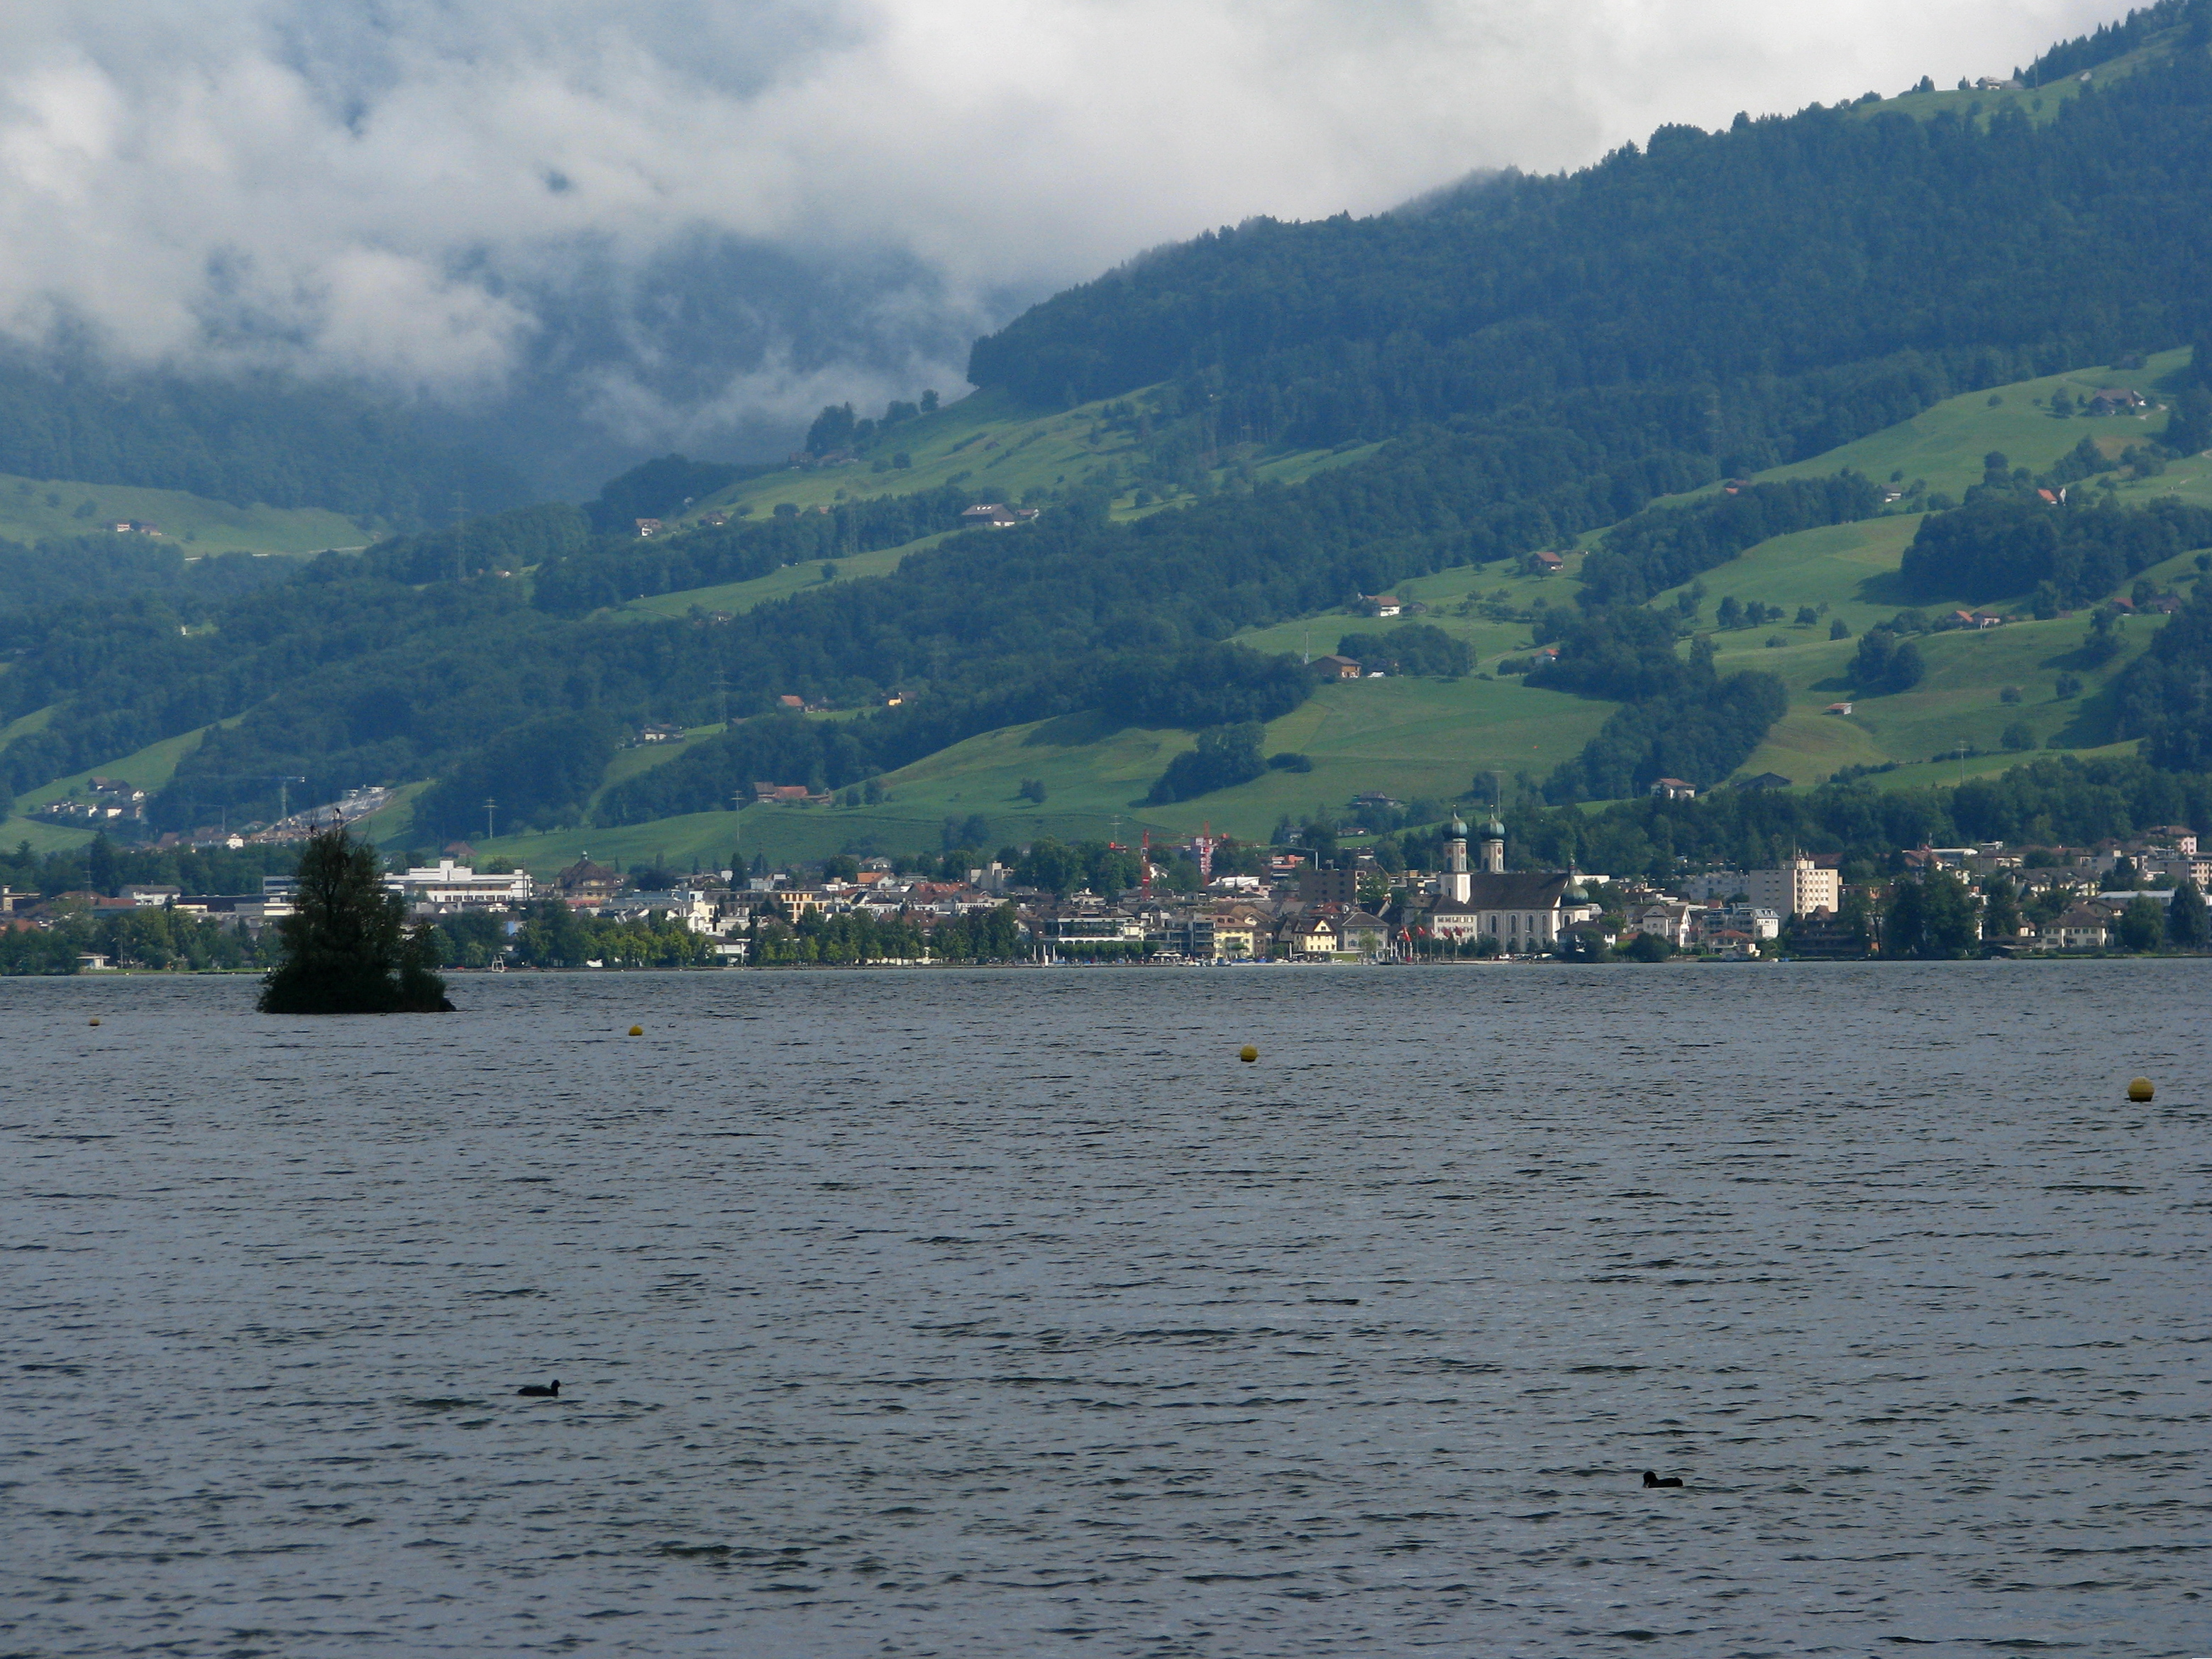 File:Lachen - Obersee - Rapperswil IMG 3839.jpg - Wikipedia, the free ... Rapper